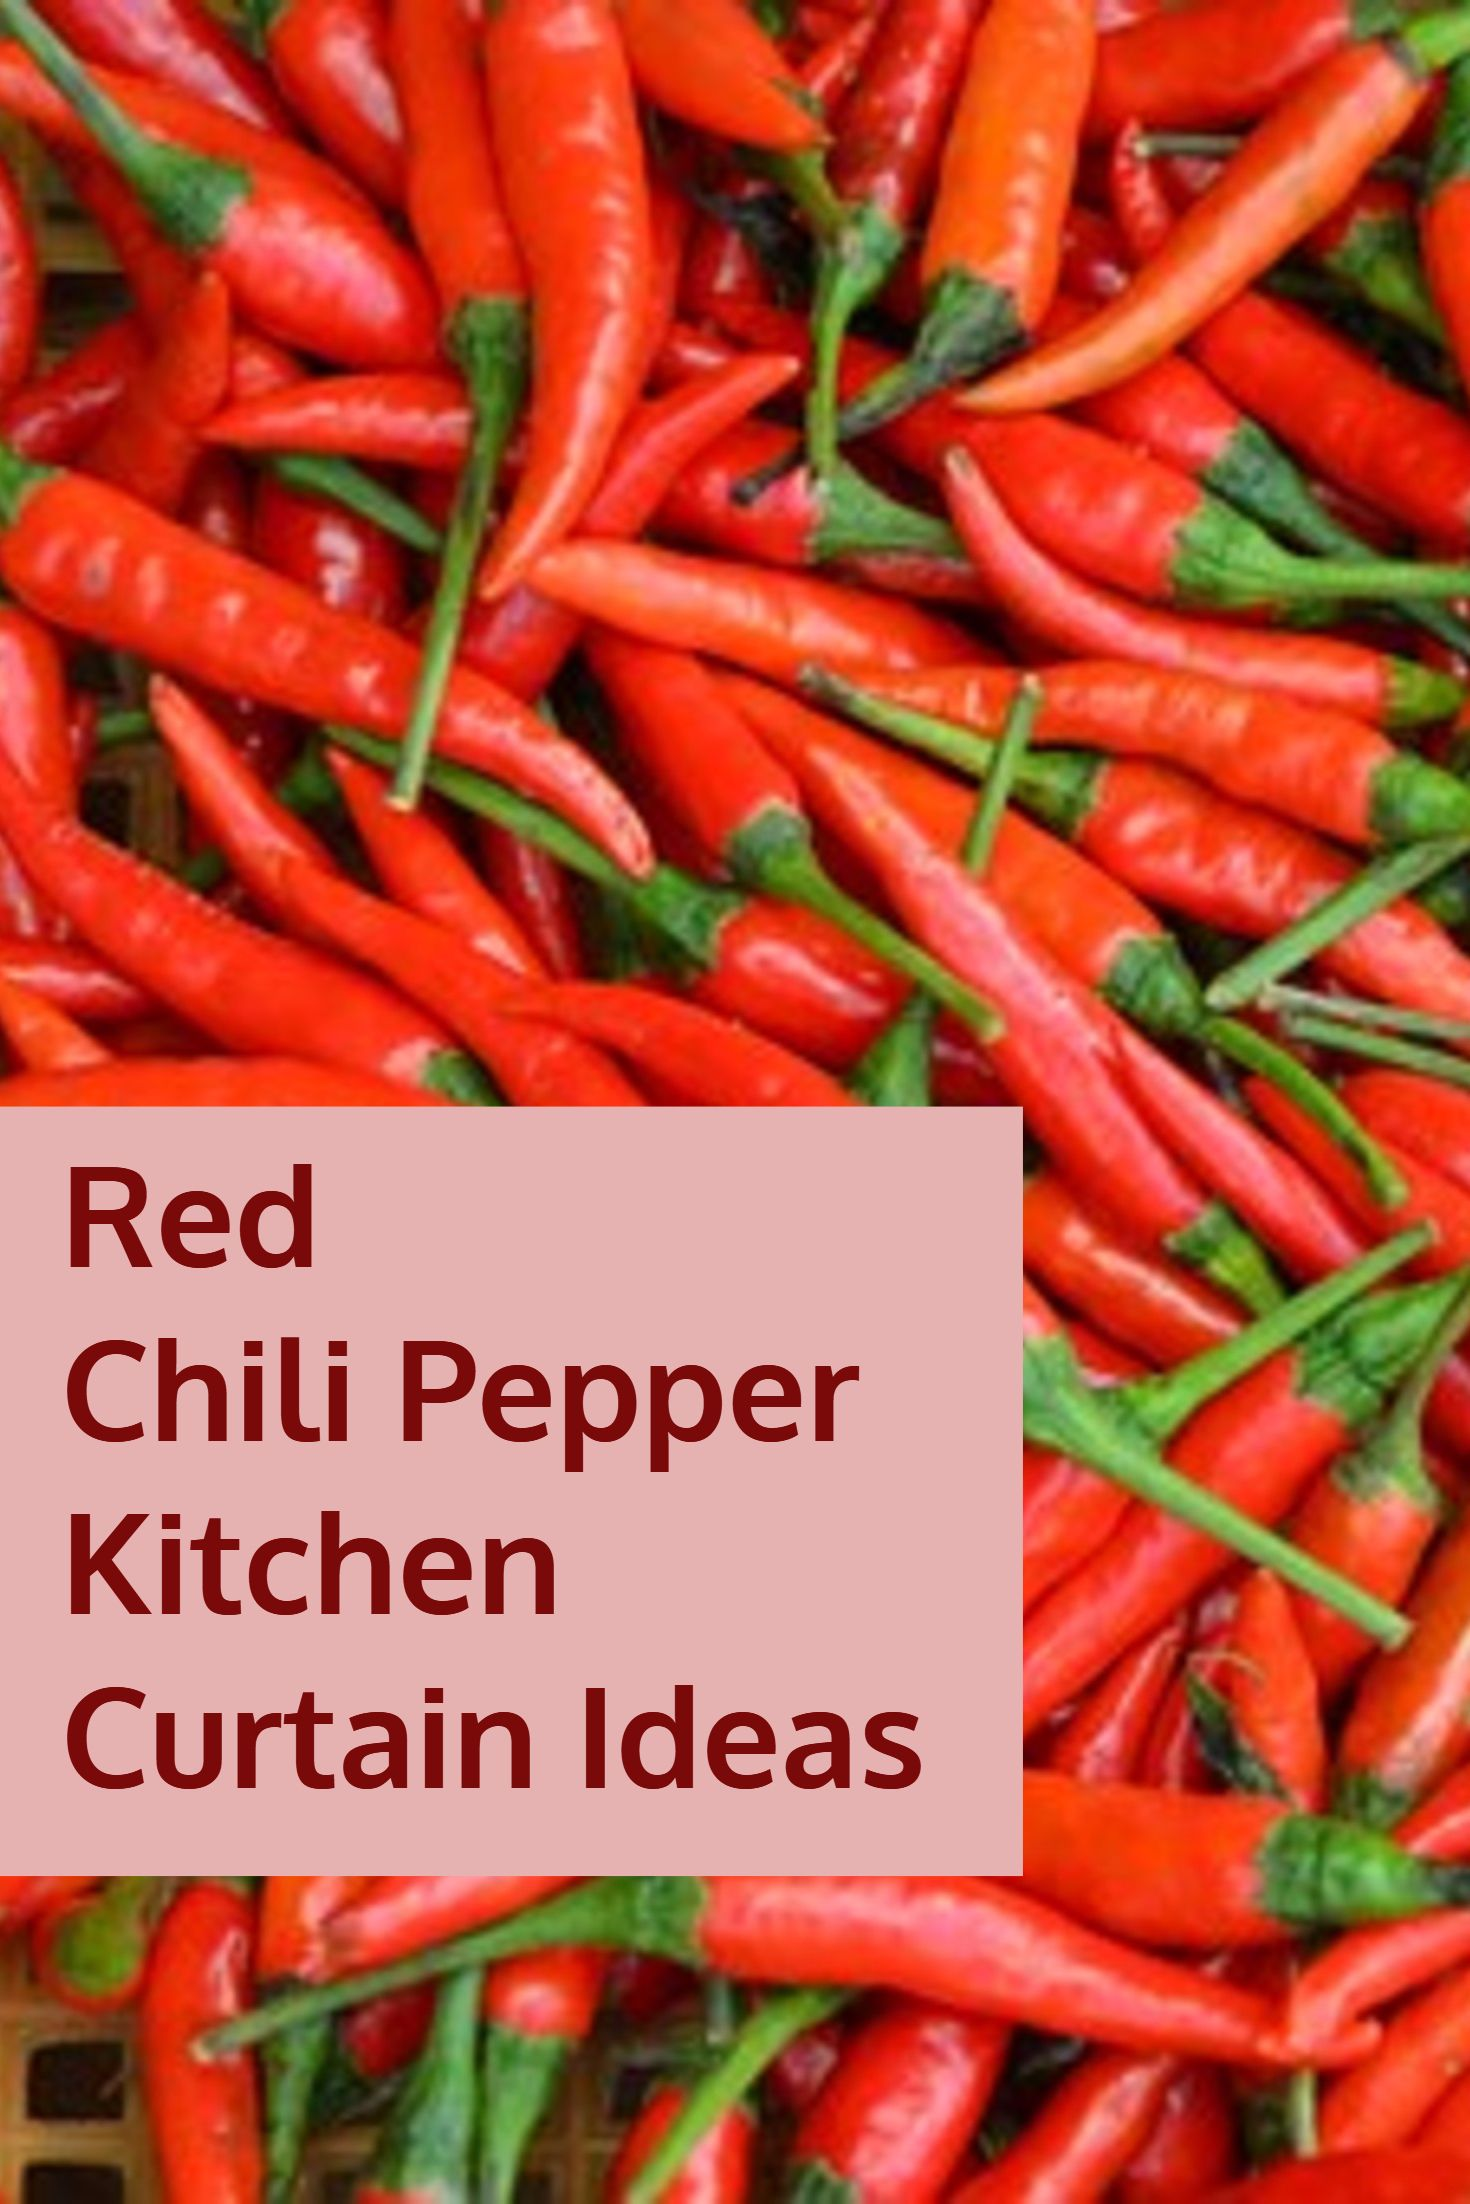 Red Chili Pepper Kitchen Curtain Ideas